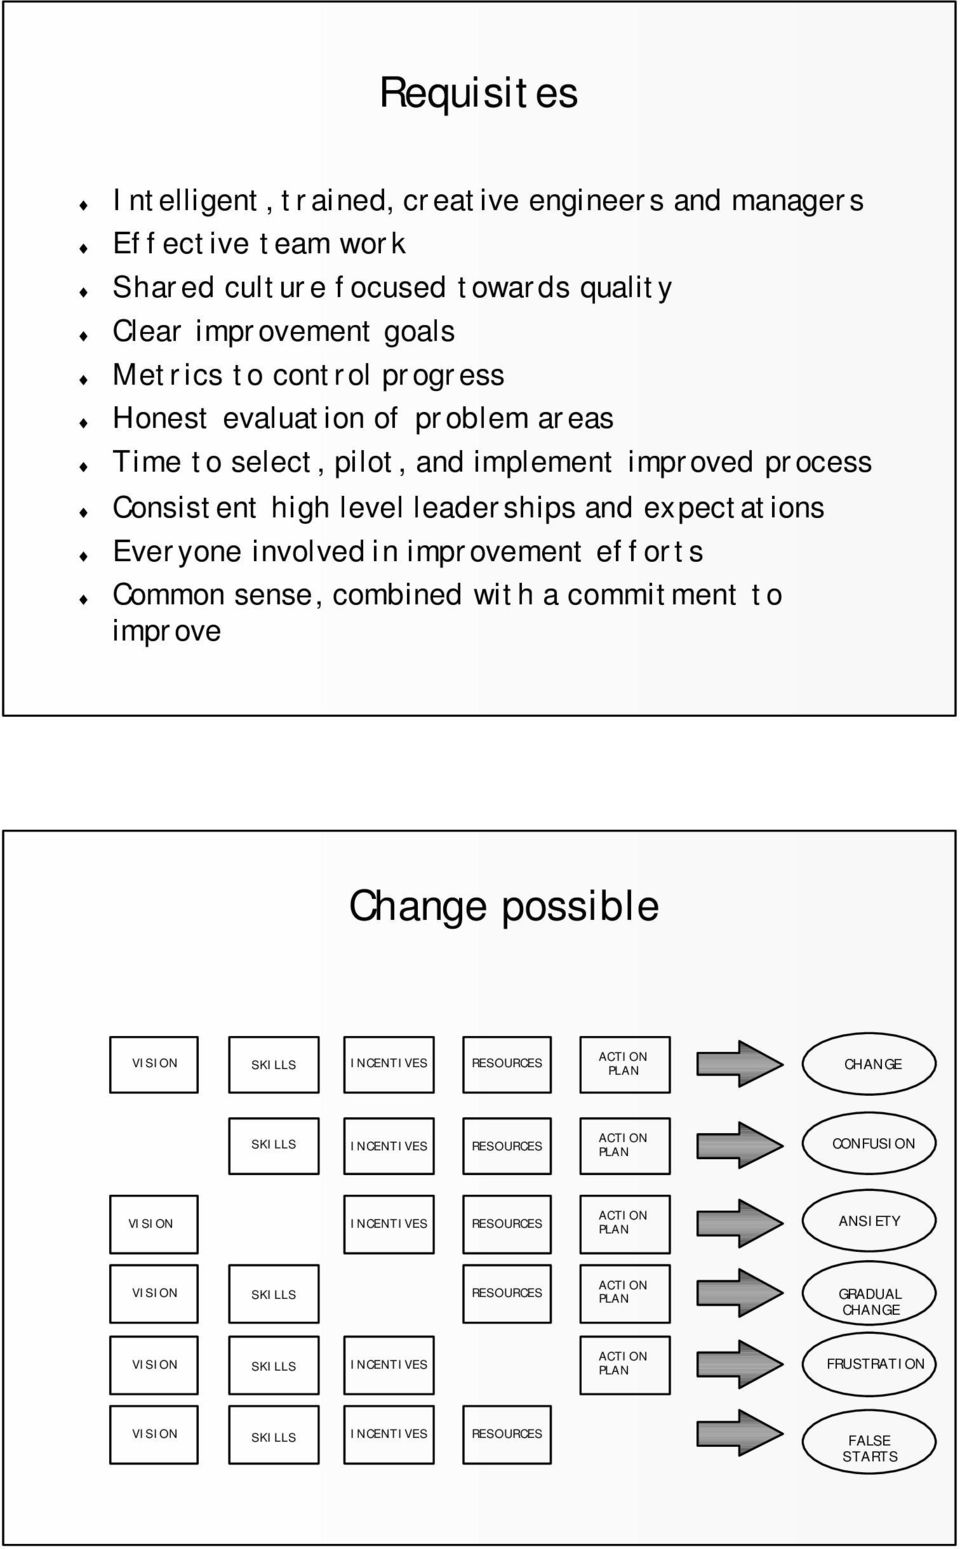 Common sense, combined with a commitment to improve Change possible VISION SKILLS INCENTIVES RESOURCES ACTION PLAN CHANGE SKILLS INCENTIVES RESOURCES ACTION PLAN CONFUSION VISION